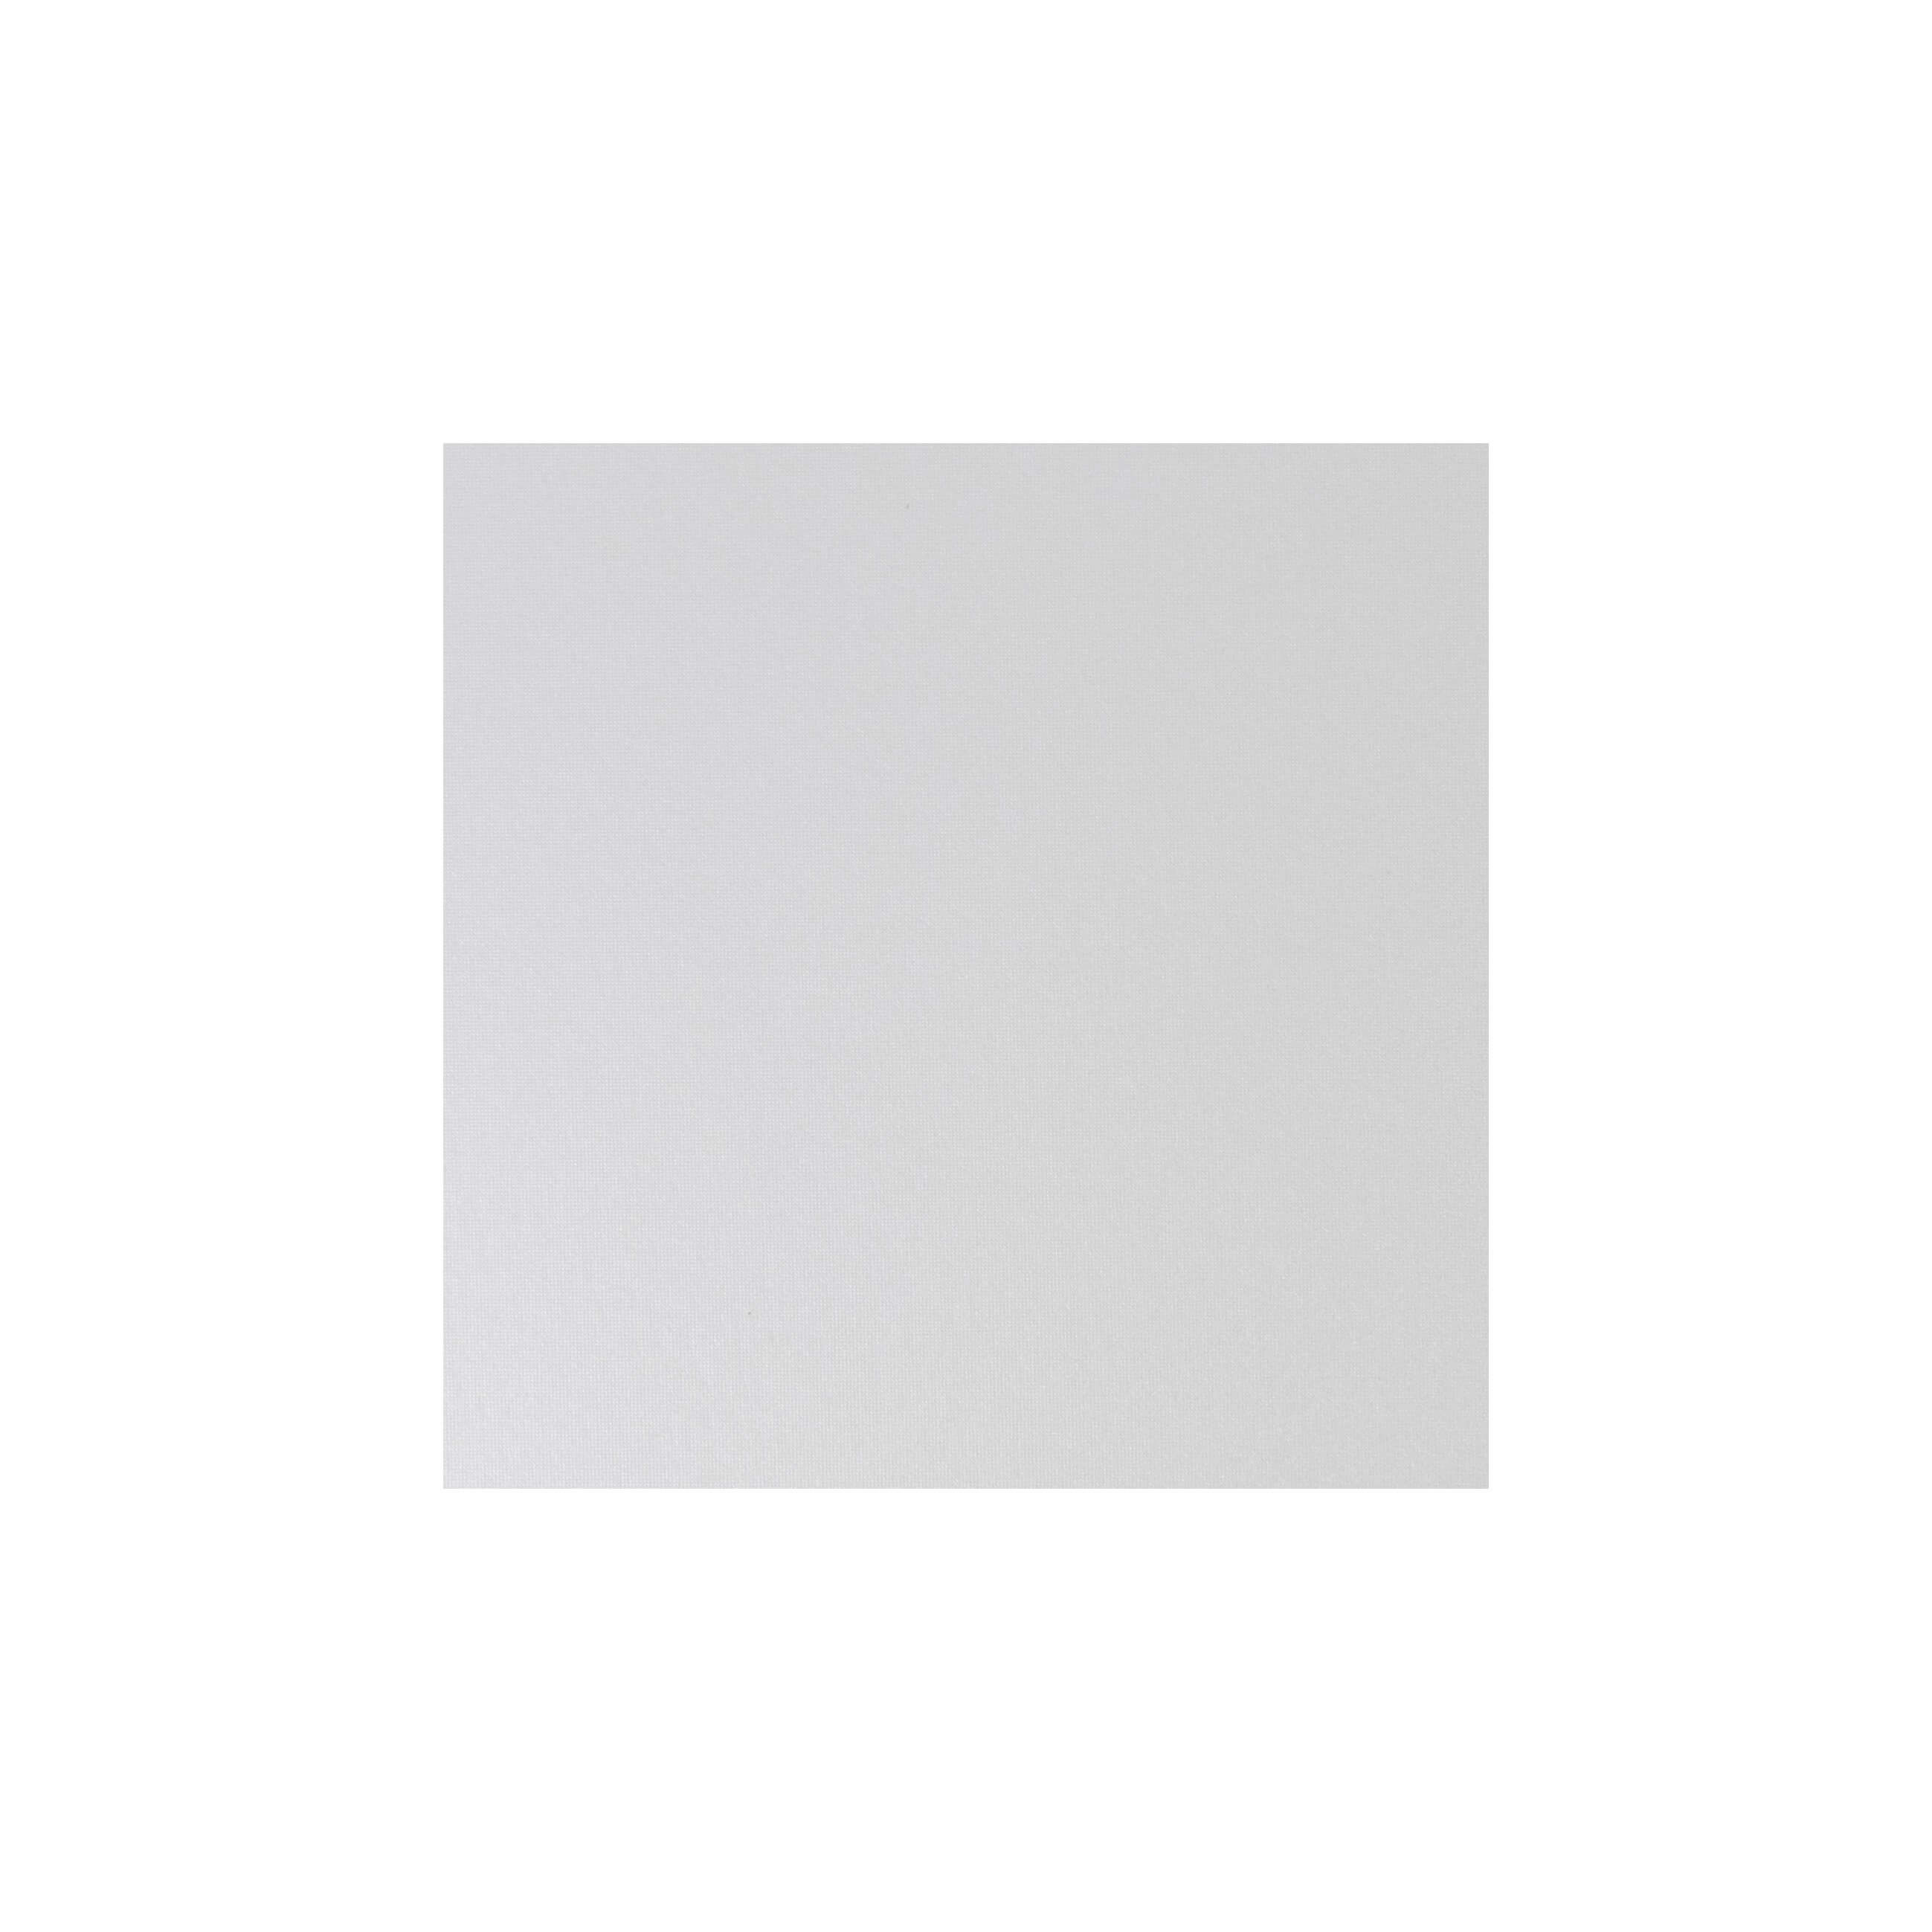 Cardstock 119mm Square - Pearlescent Ivory